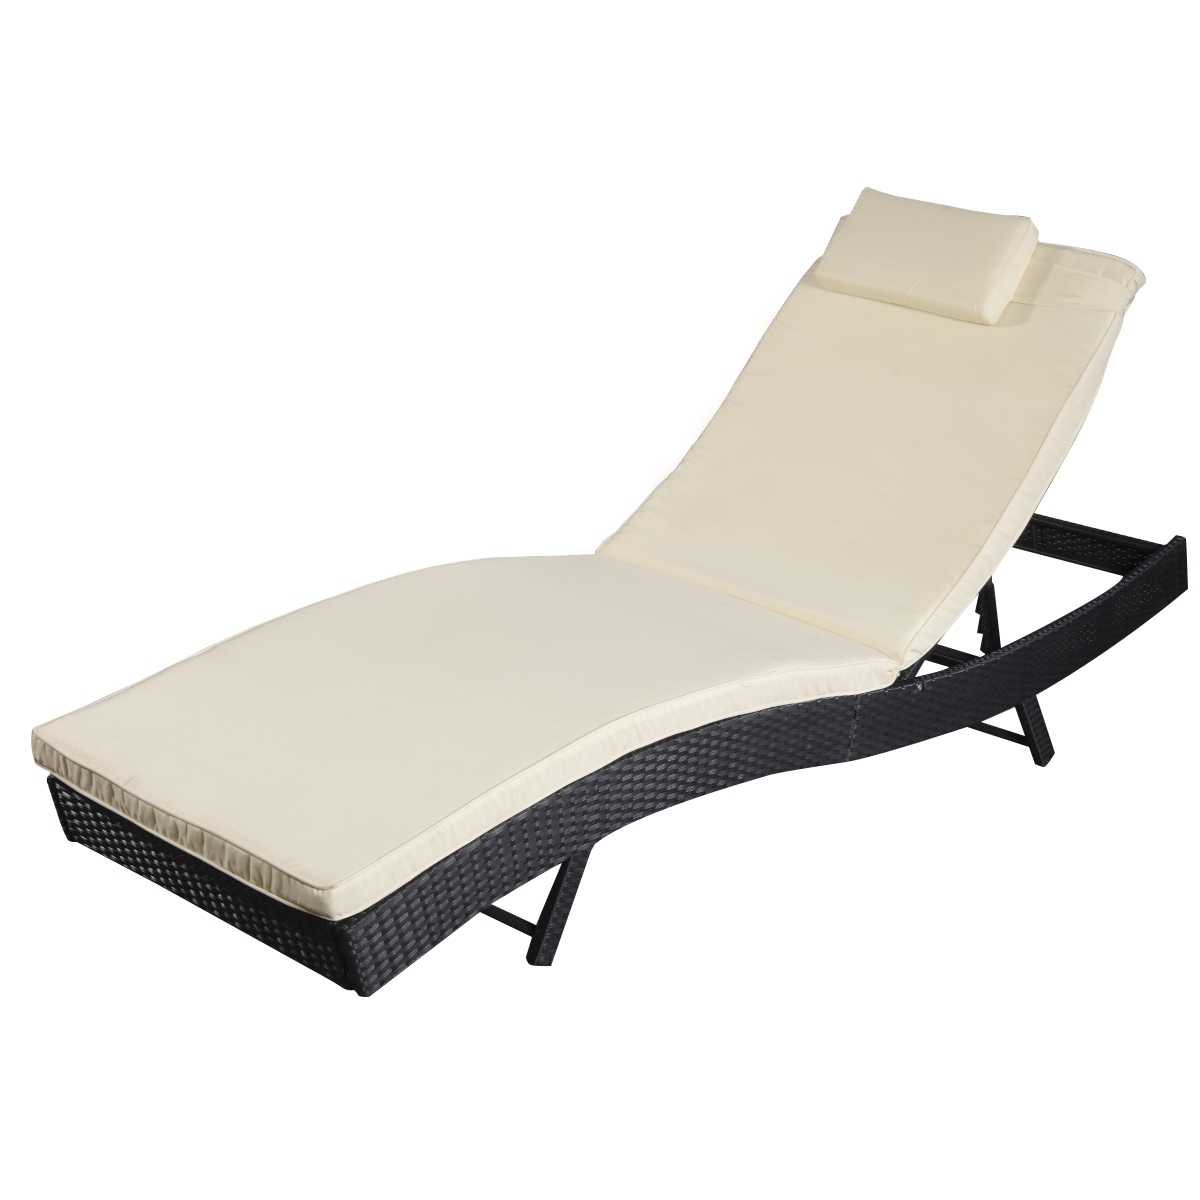 Costway Adjustable Pool Chaise Lounge Chair Outdoor Patio Within Famous Adjustable Pool Chaise Lounge Chair Recliners (View 3 of 15)